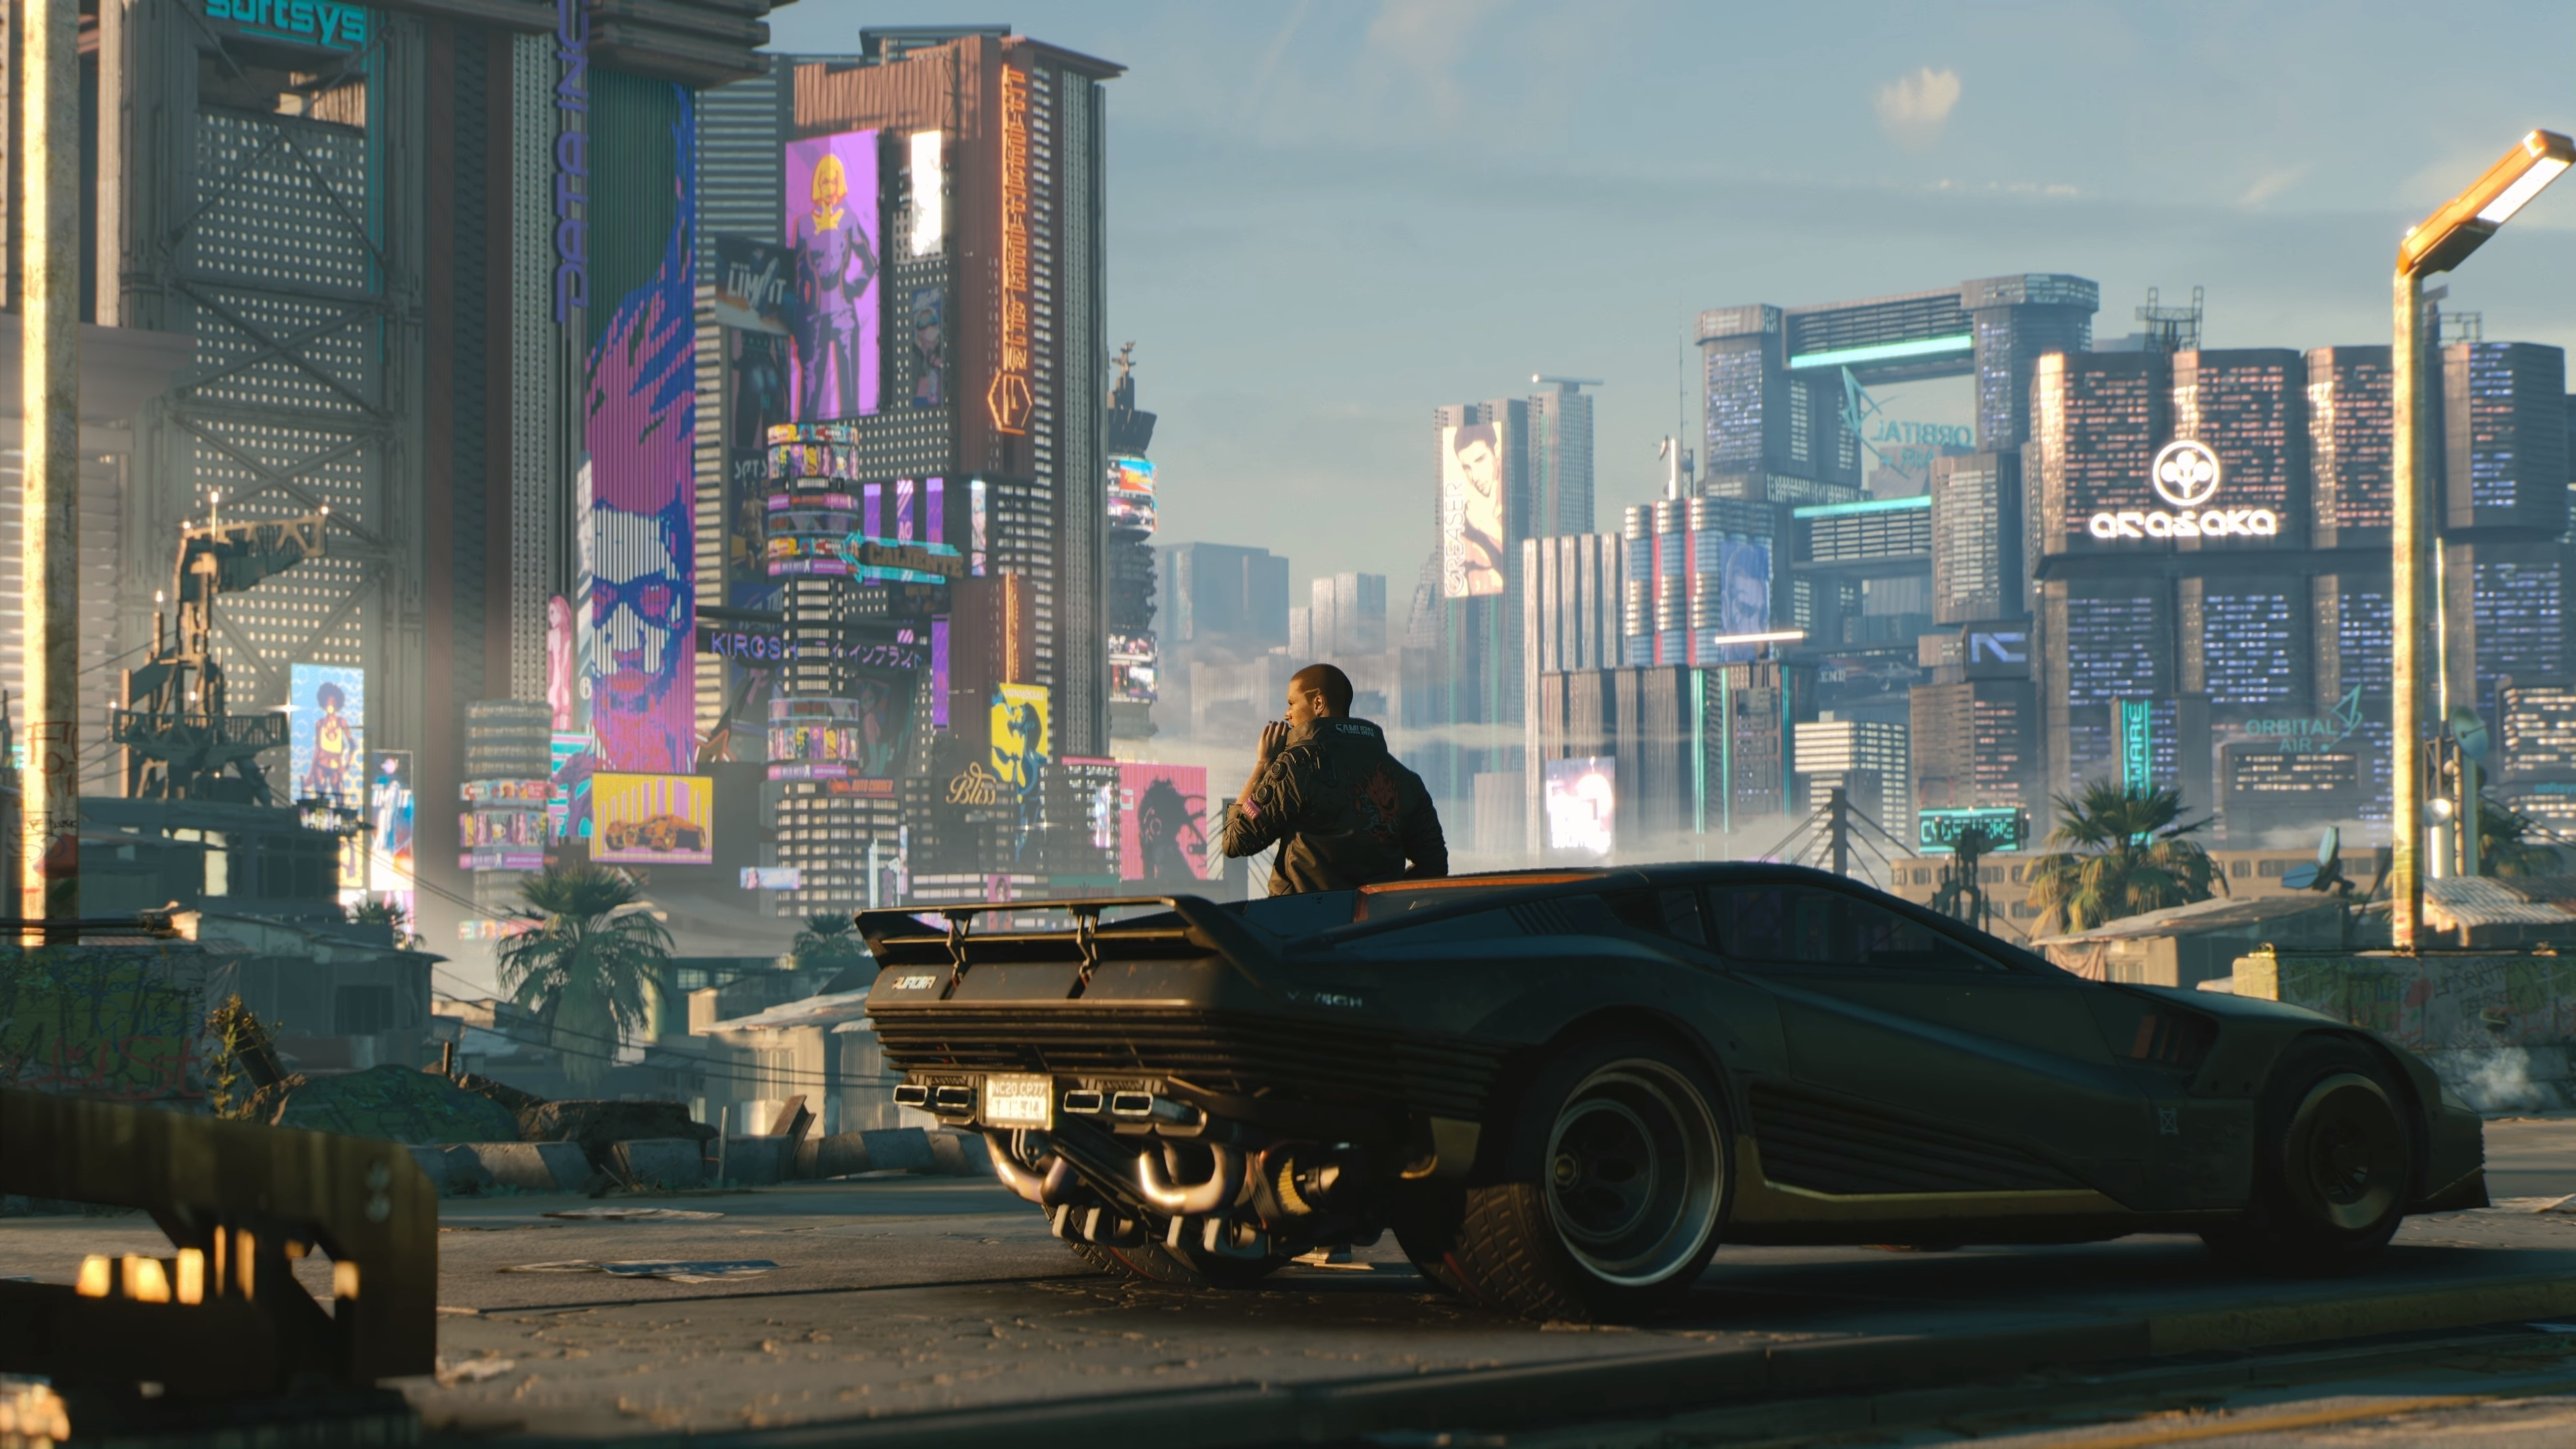 Car Games Wallpapers Hd 1080p Download 3840x2400 Wallpaper Cyberpunk 2077 Man With